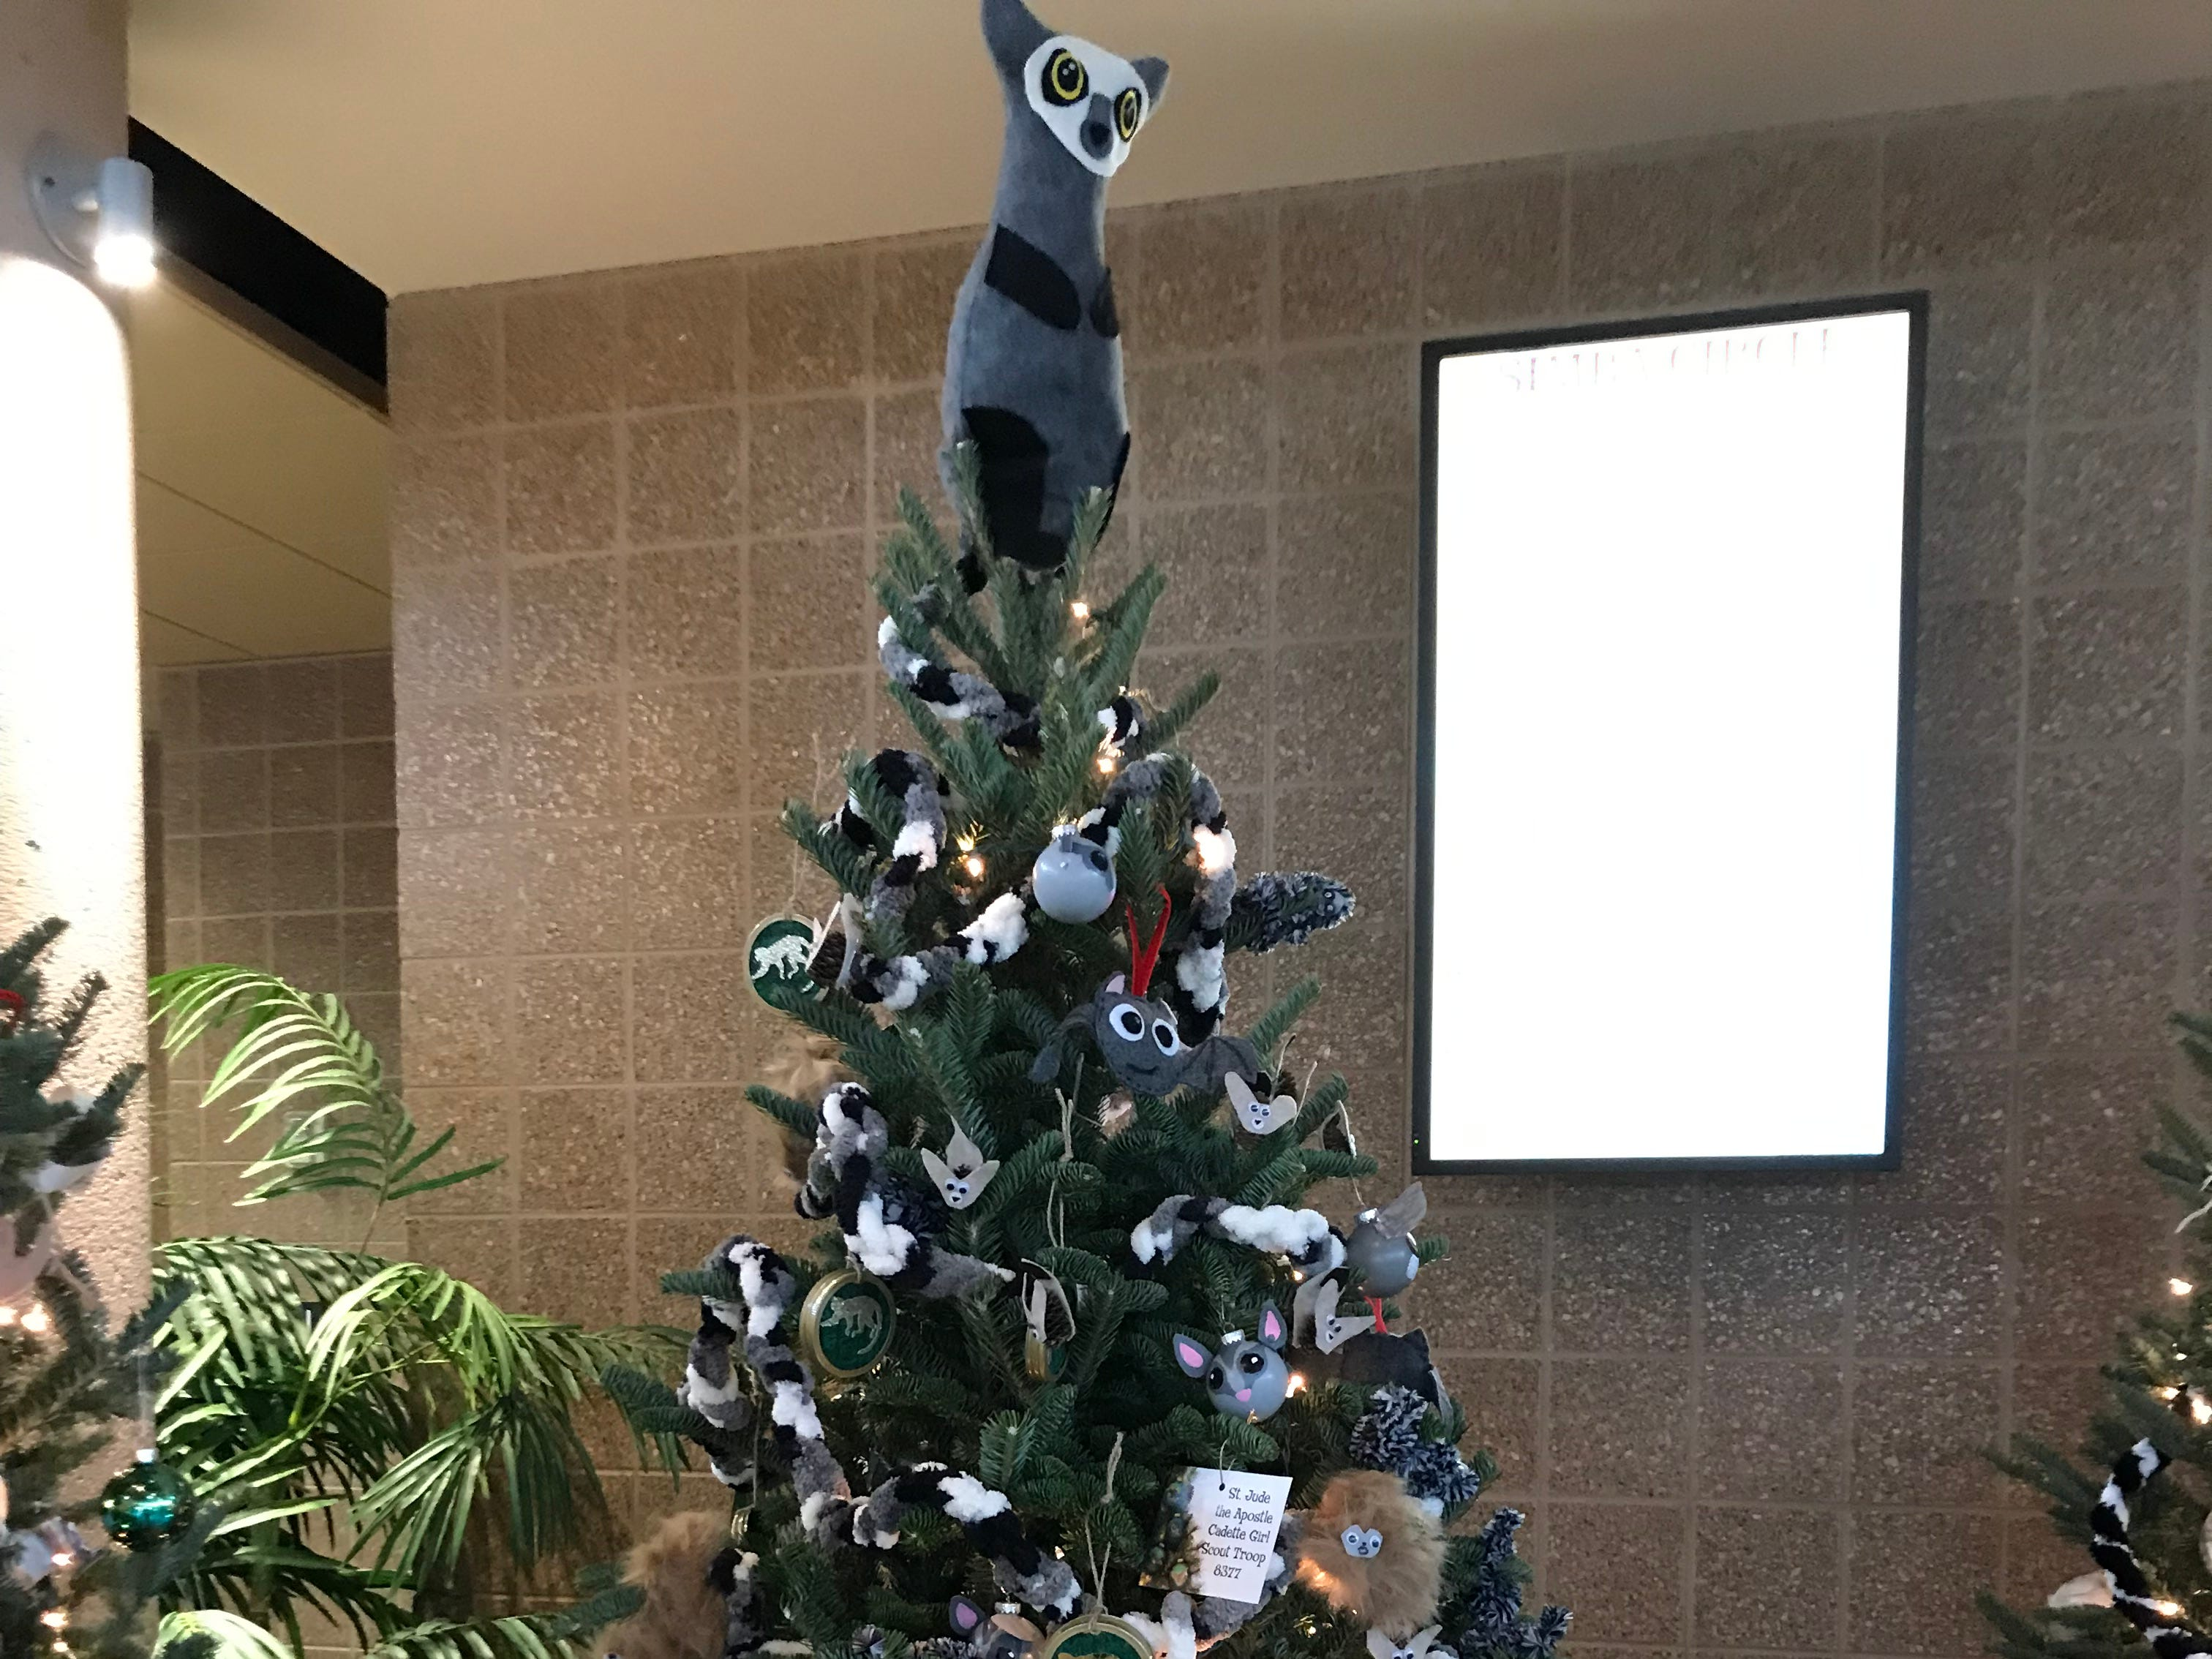 The Falls Busy Beavers 4-H Club decorated this tree in the small mammal area of the Christmas trees at the zoo.